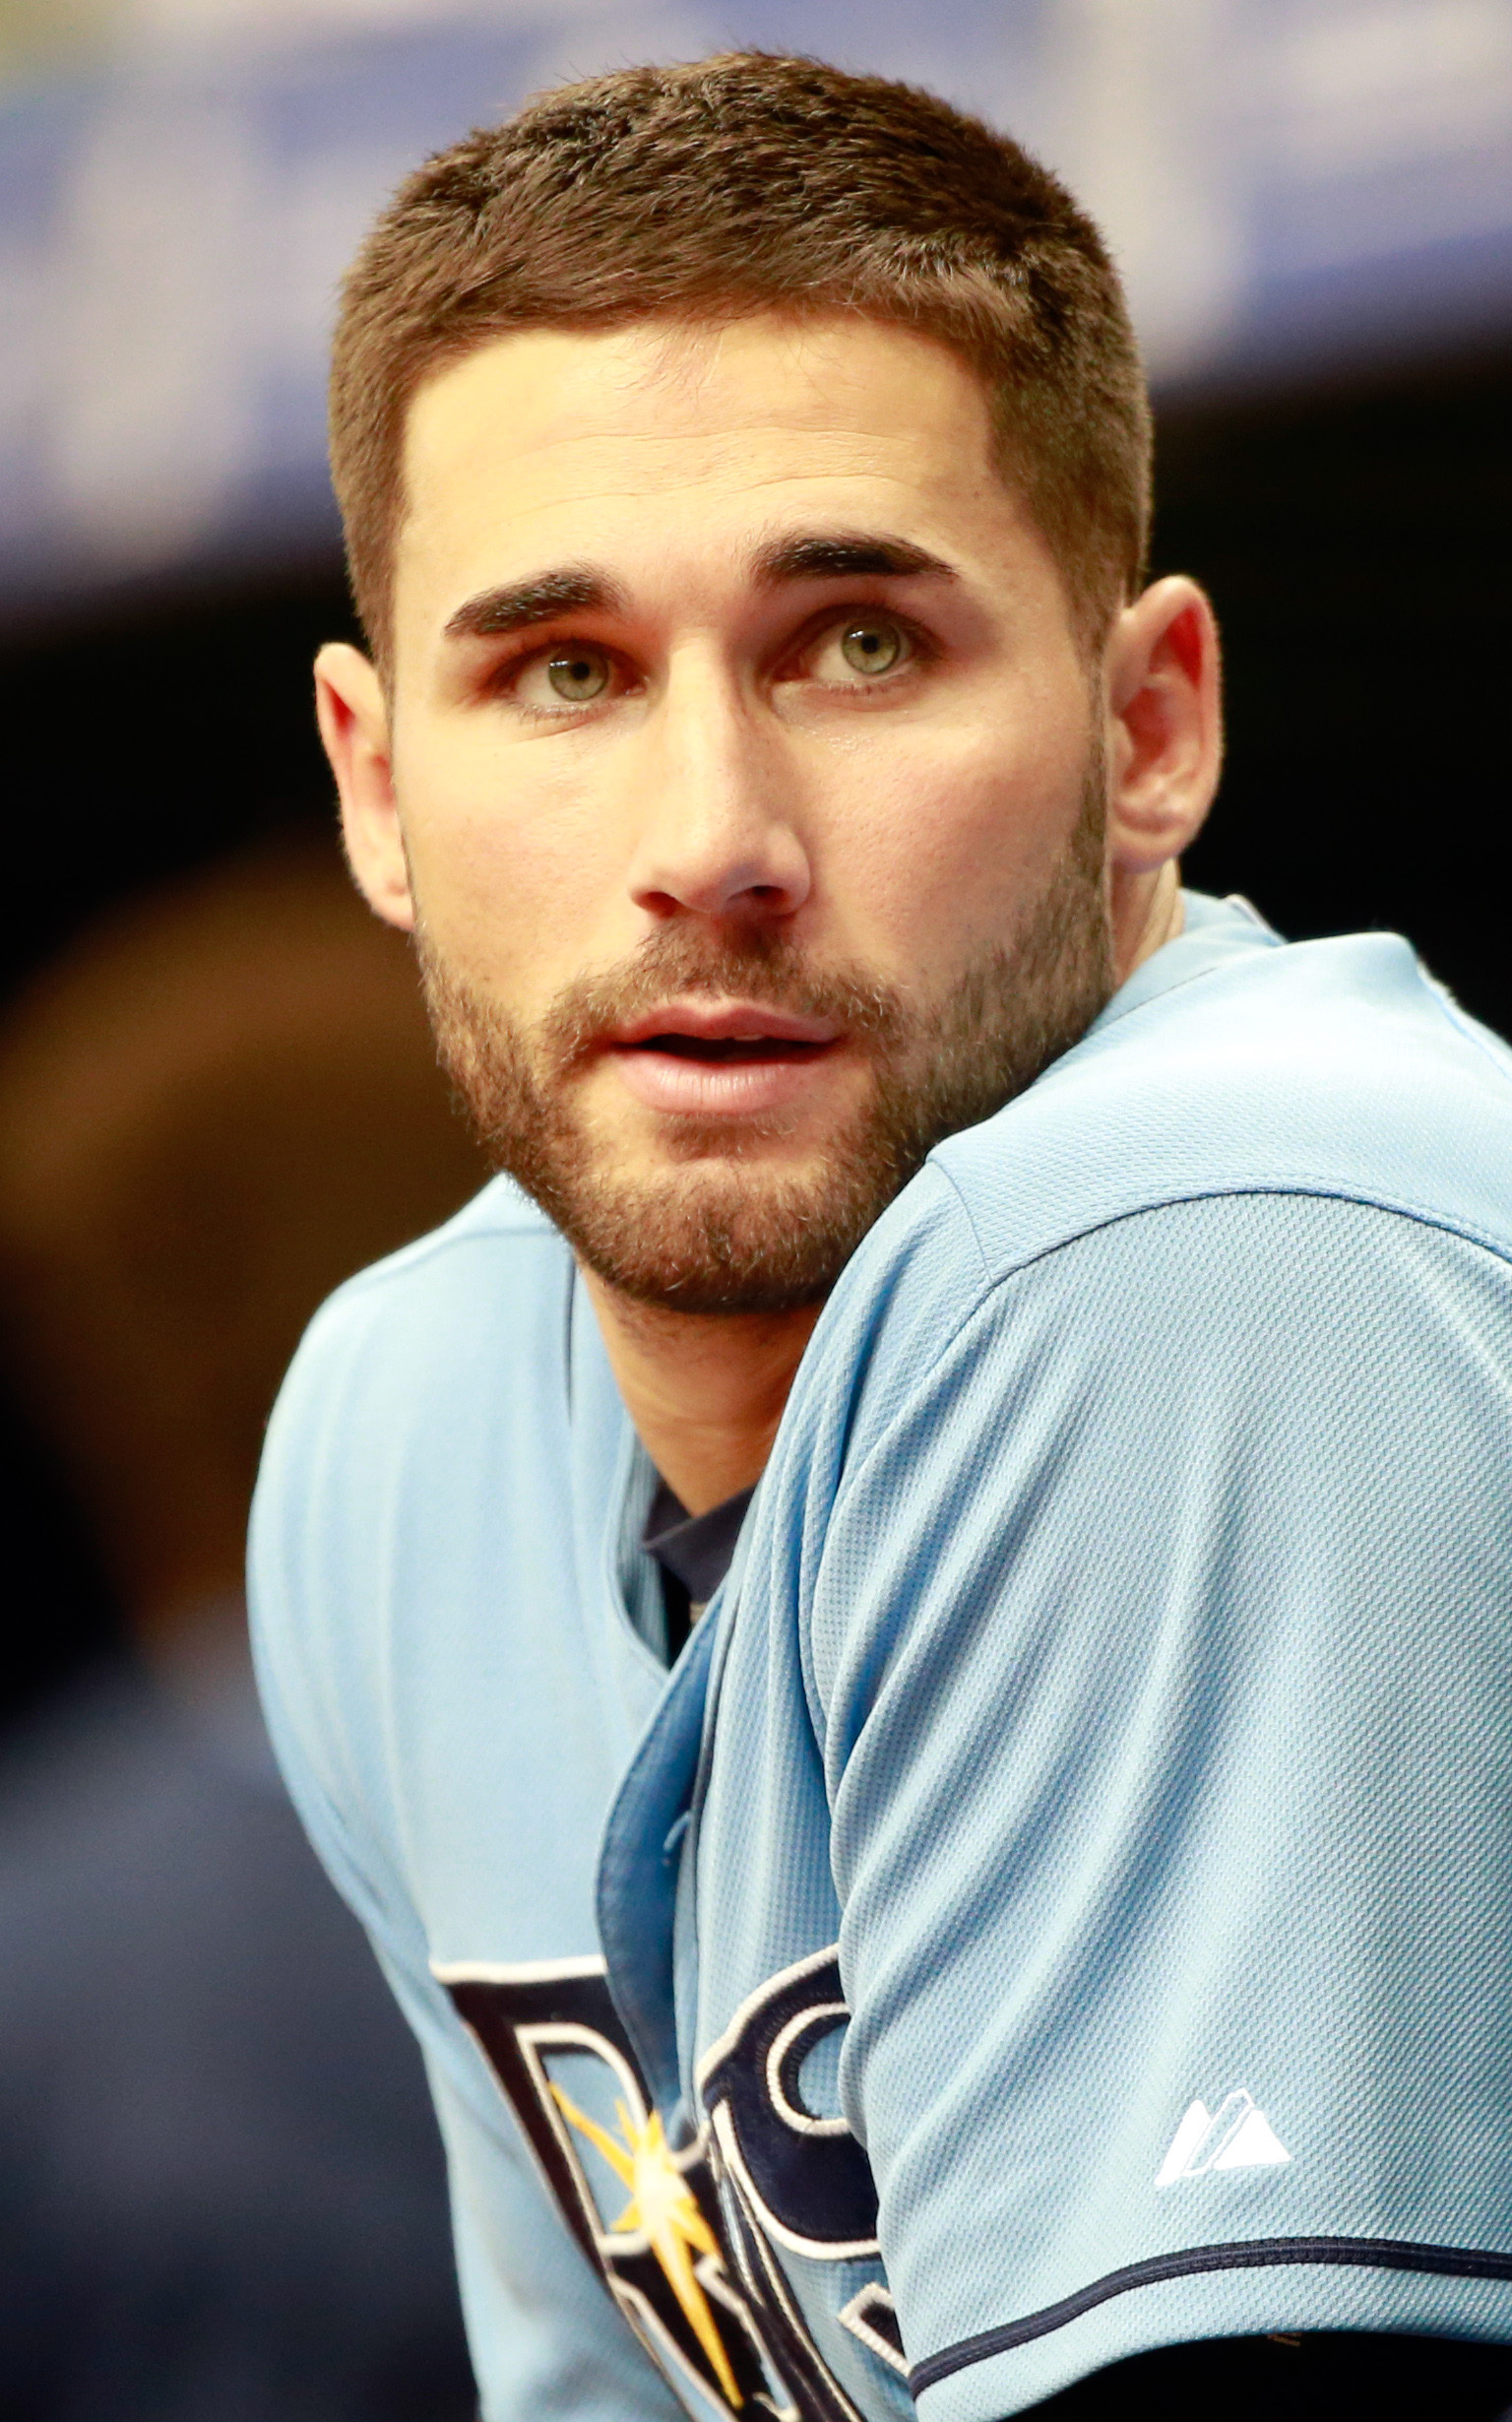 Did he also set the MLB record for being the most handsome?